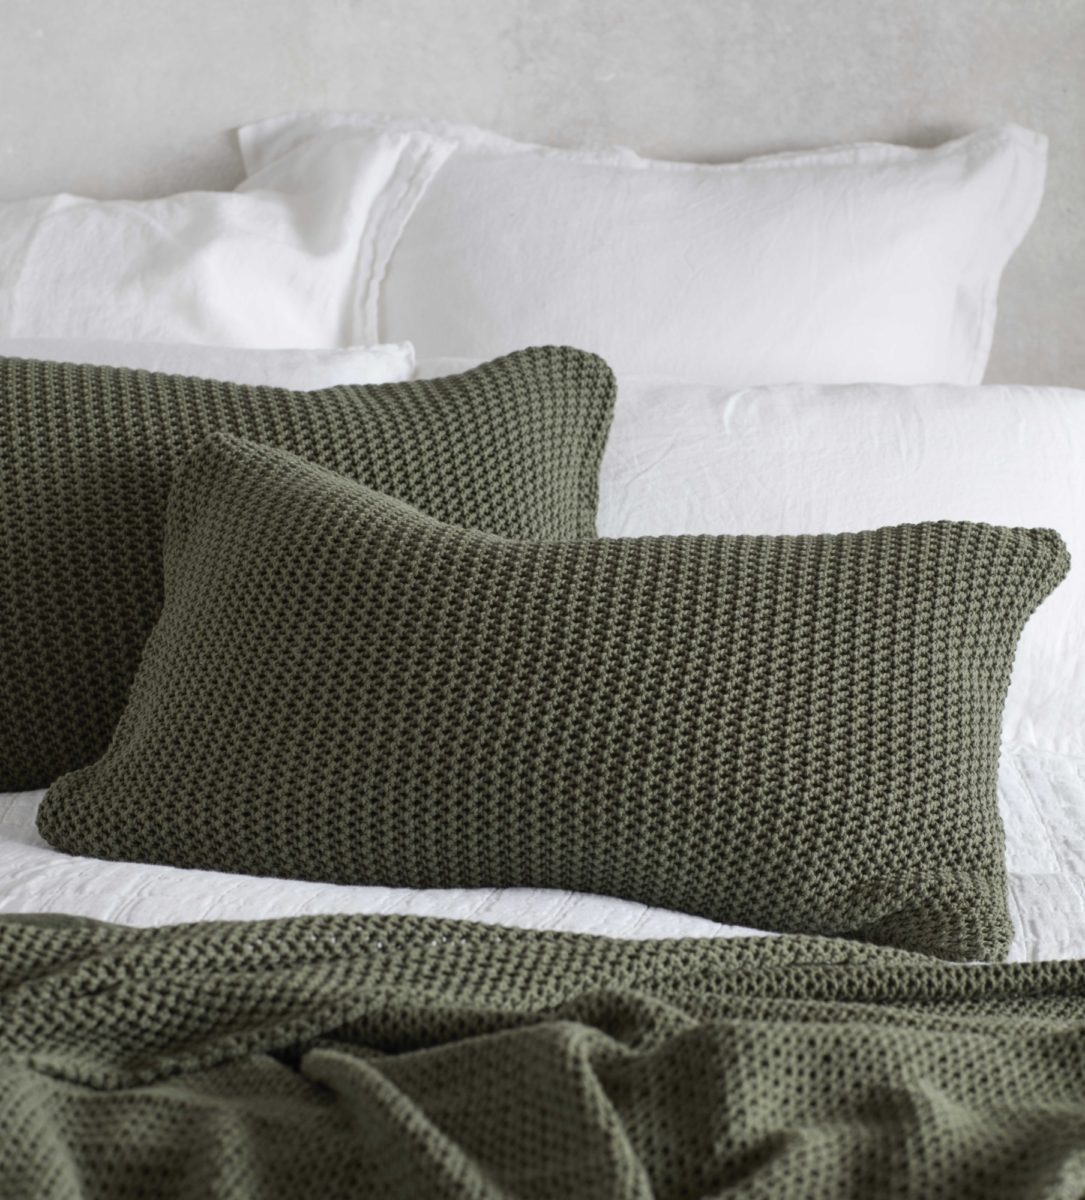 knitted olive green bed throw and cushion cover secret linen store